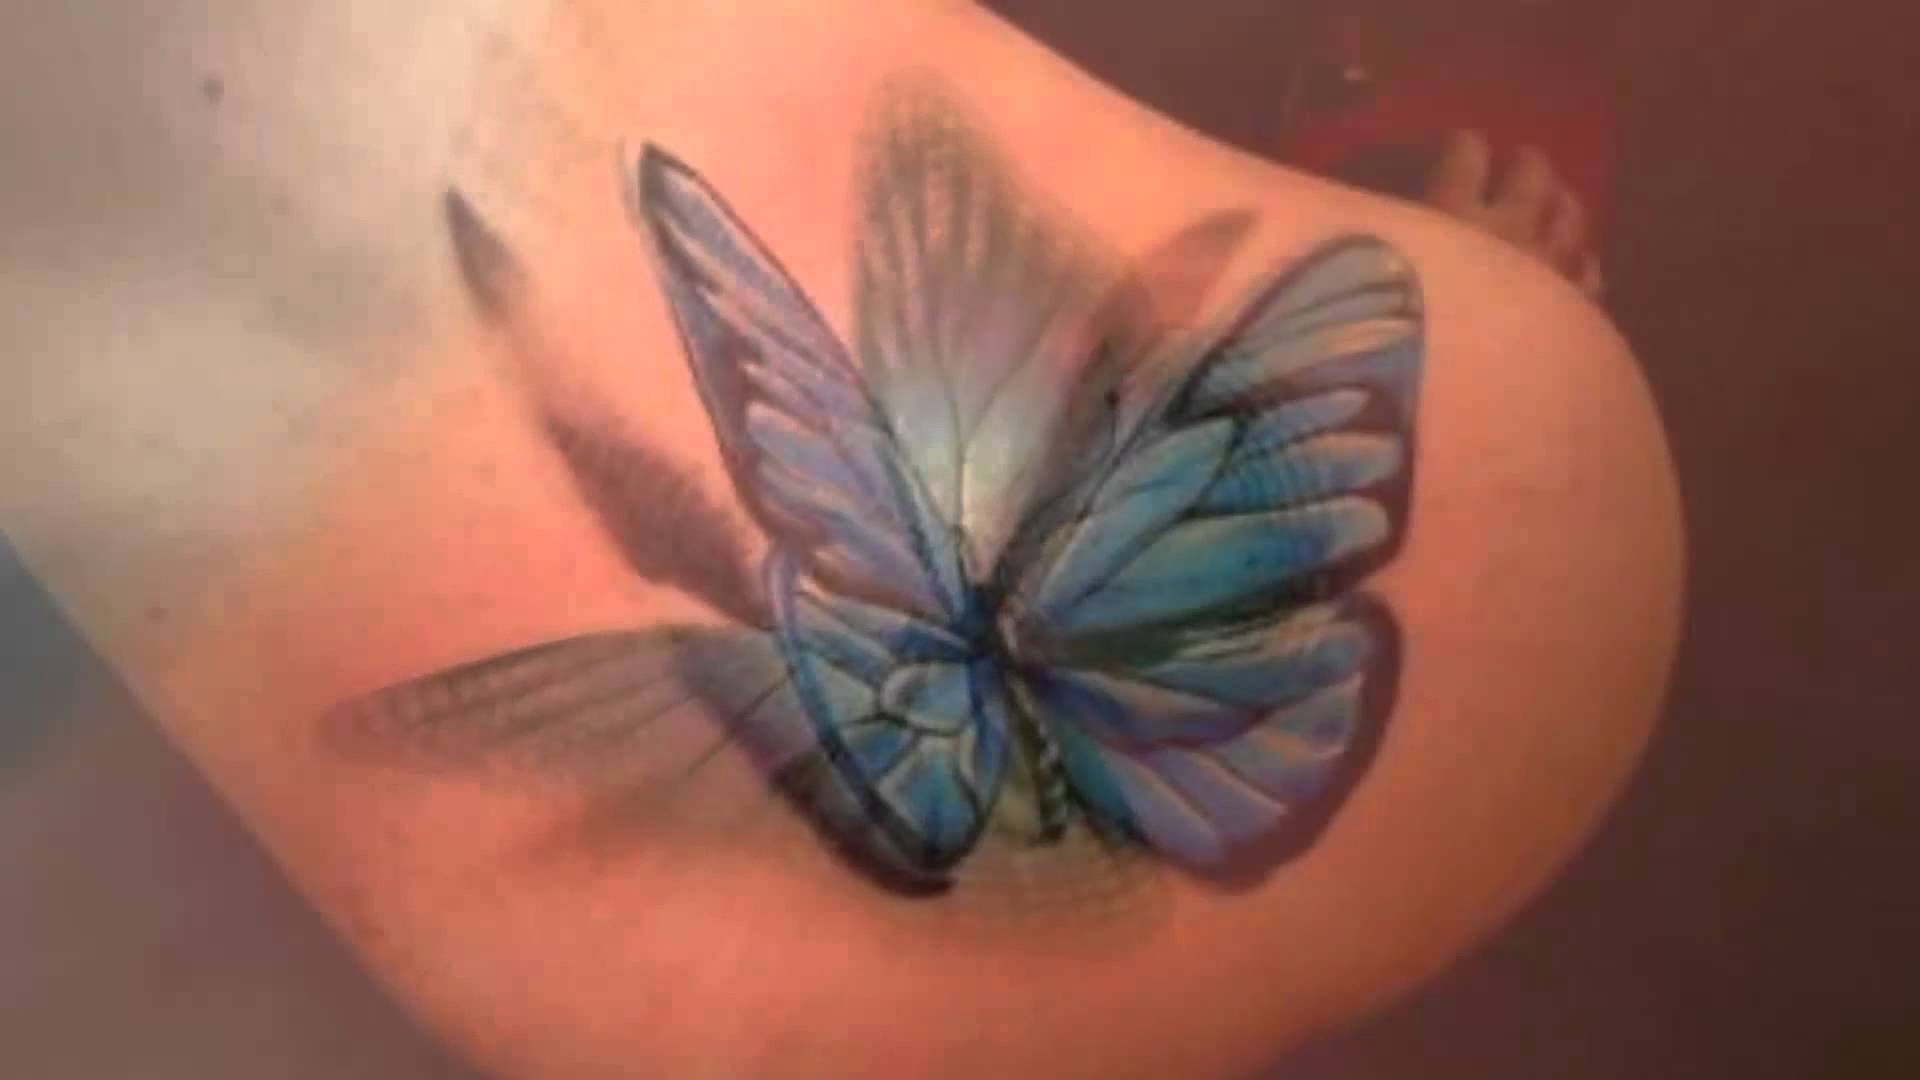 Blue 3d Butterfly Tattoo On Girl Back Shoulder 3d Butterfly Tattoo Butterfly Tattoo Designs Blue Butterfly Tattoo